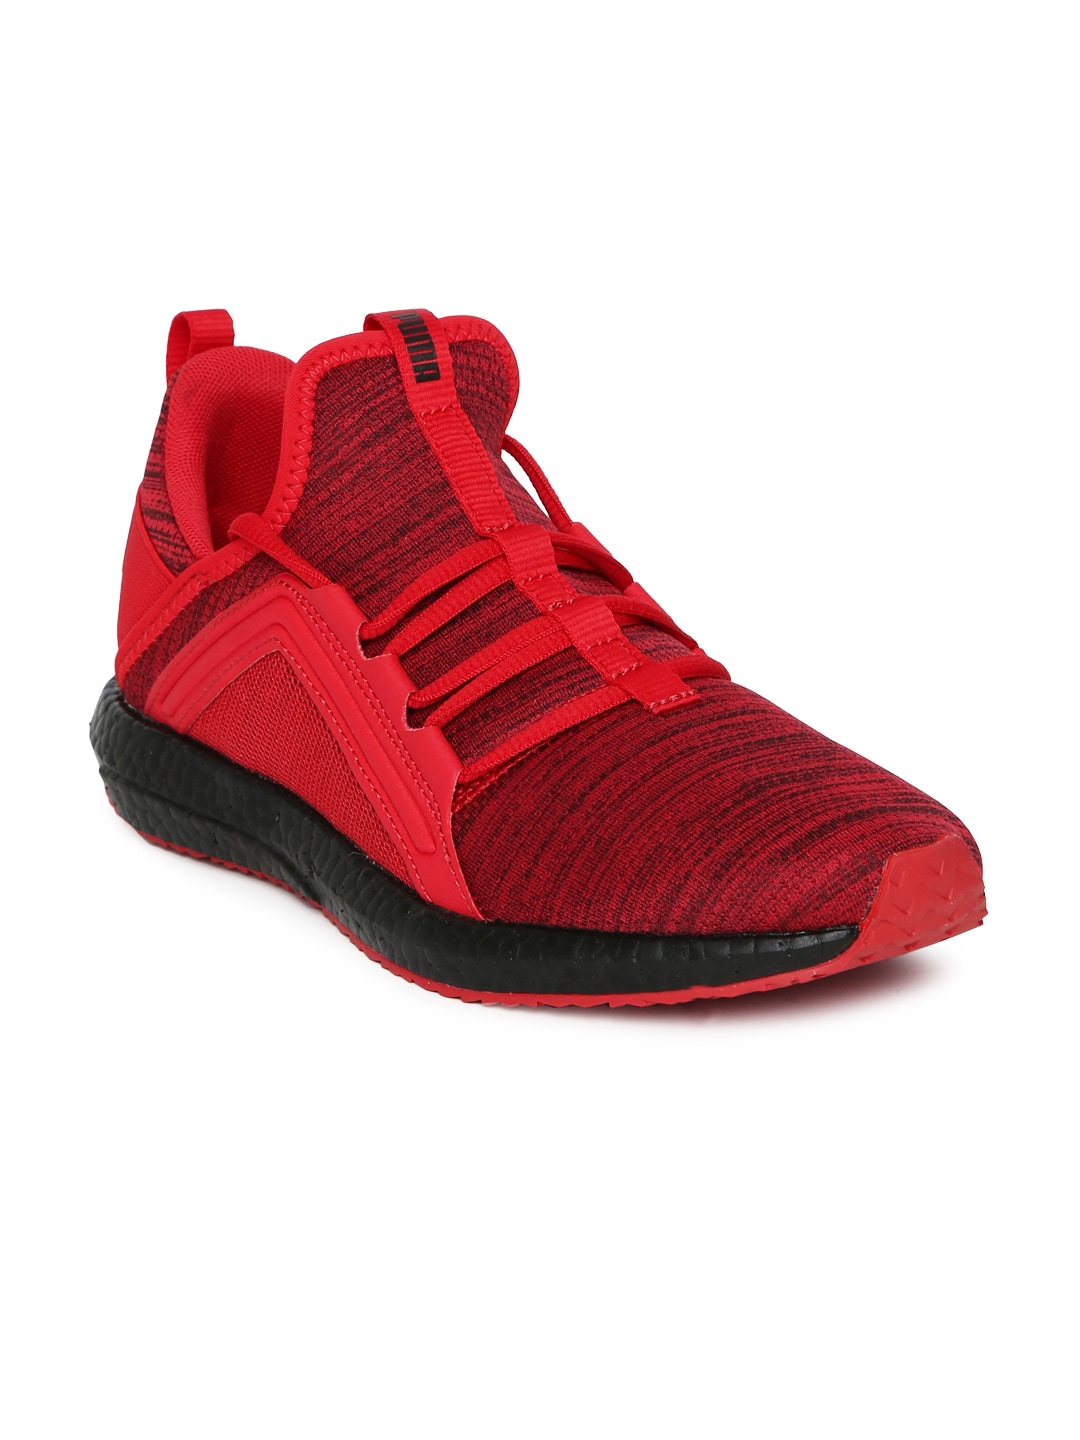 new product 36c8c abc18 Mid Sports Shoes Casual - Buy Mid Sports Shoes Casual online in India